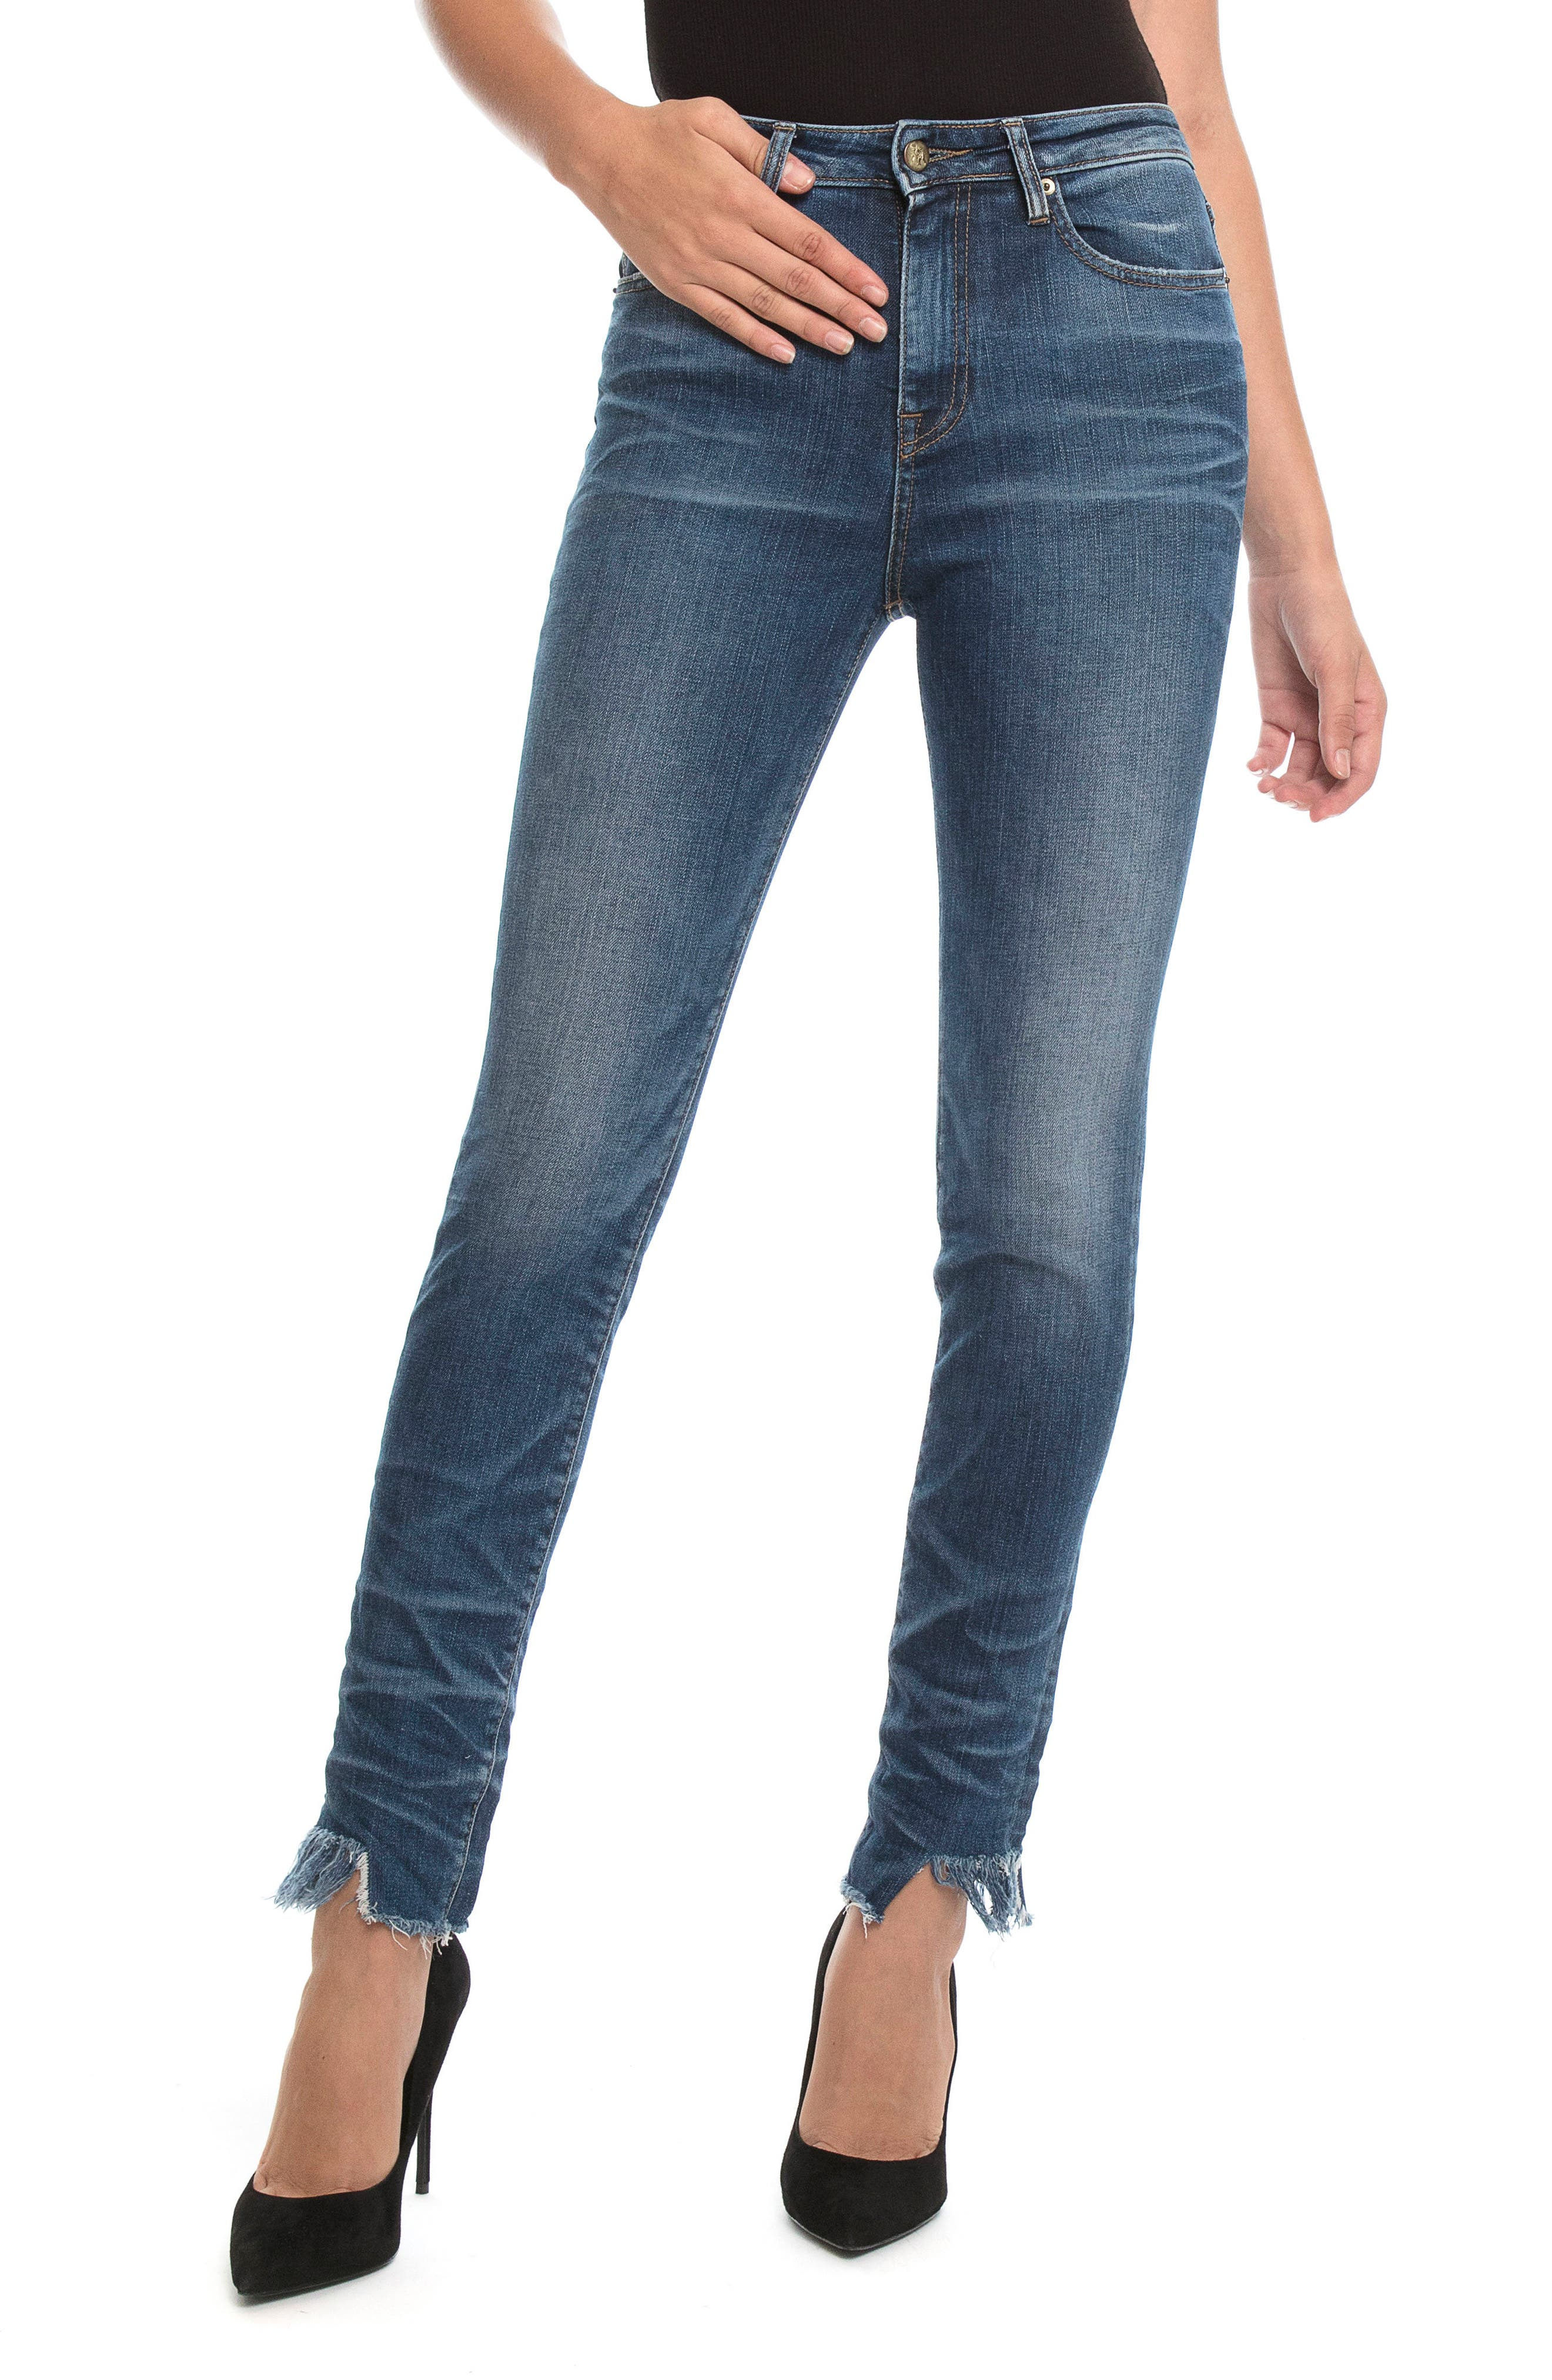 Camaro Ankle Skinny Jeans,                             Main thumbnail 1, color,                             484